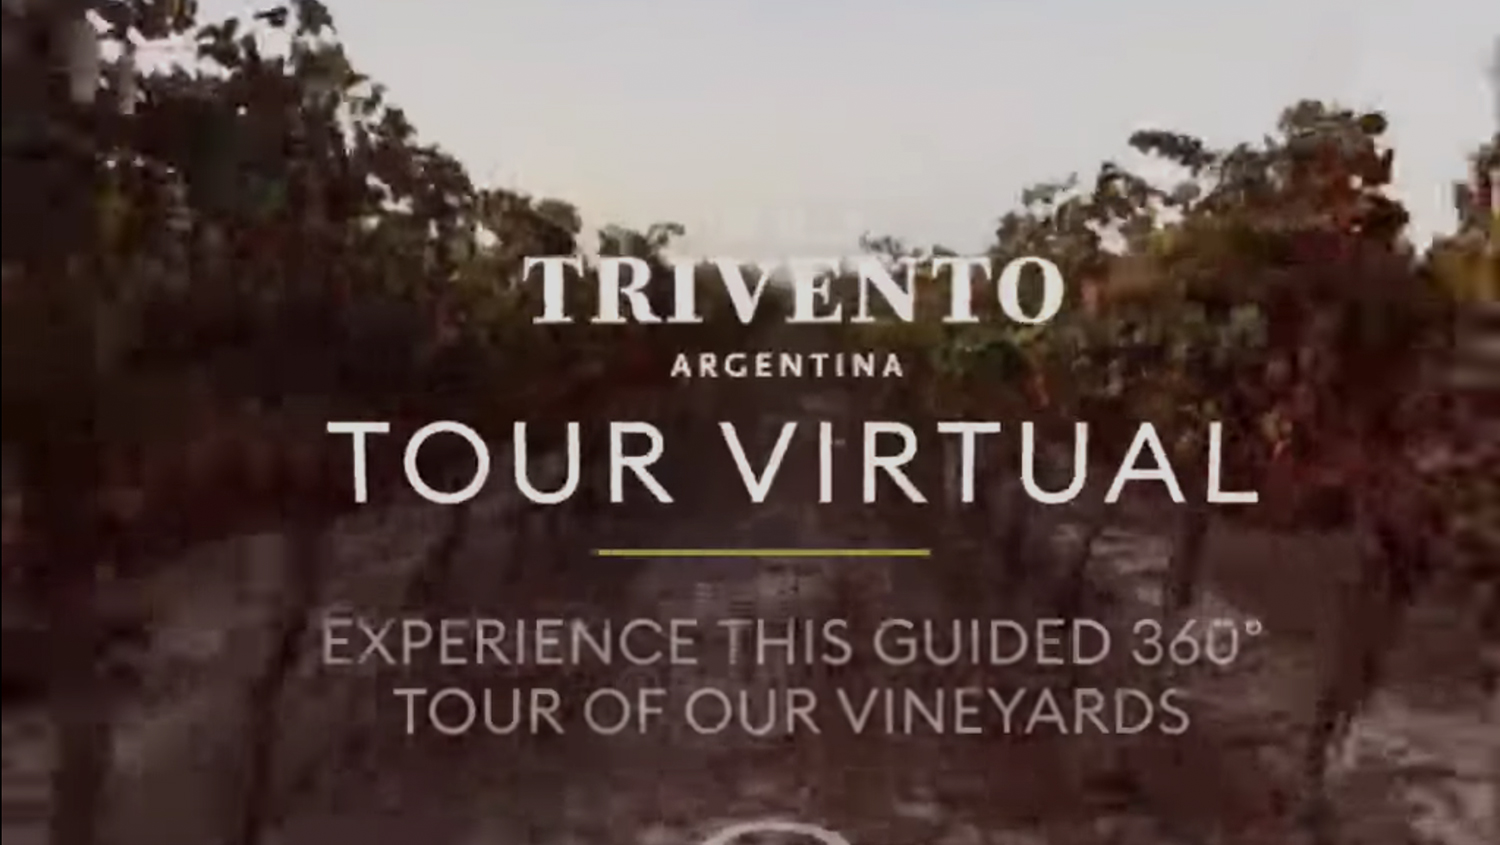 Take Trivento's virtual tour to experience the winery, tasting room, an edgy modern art space and vineyards, from anywhere